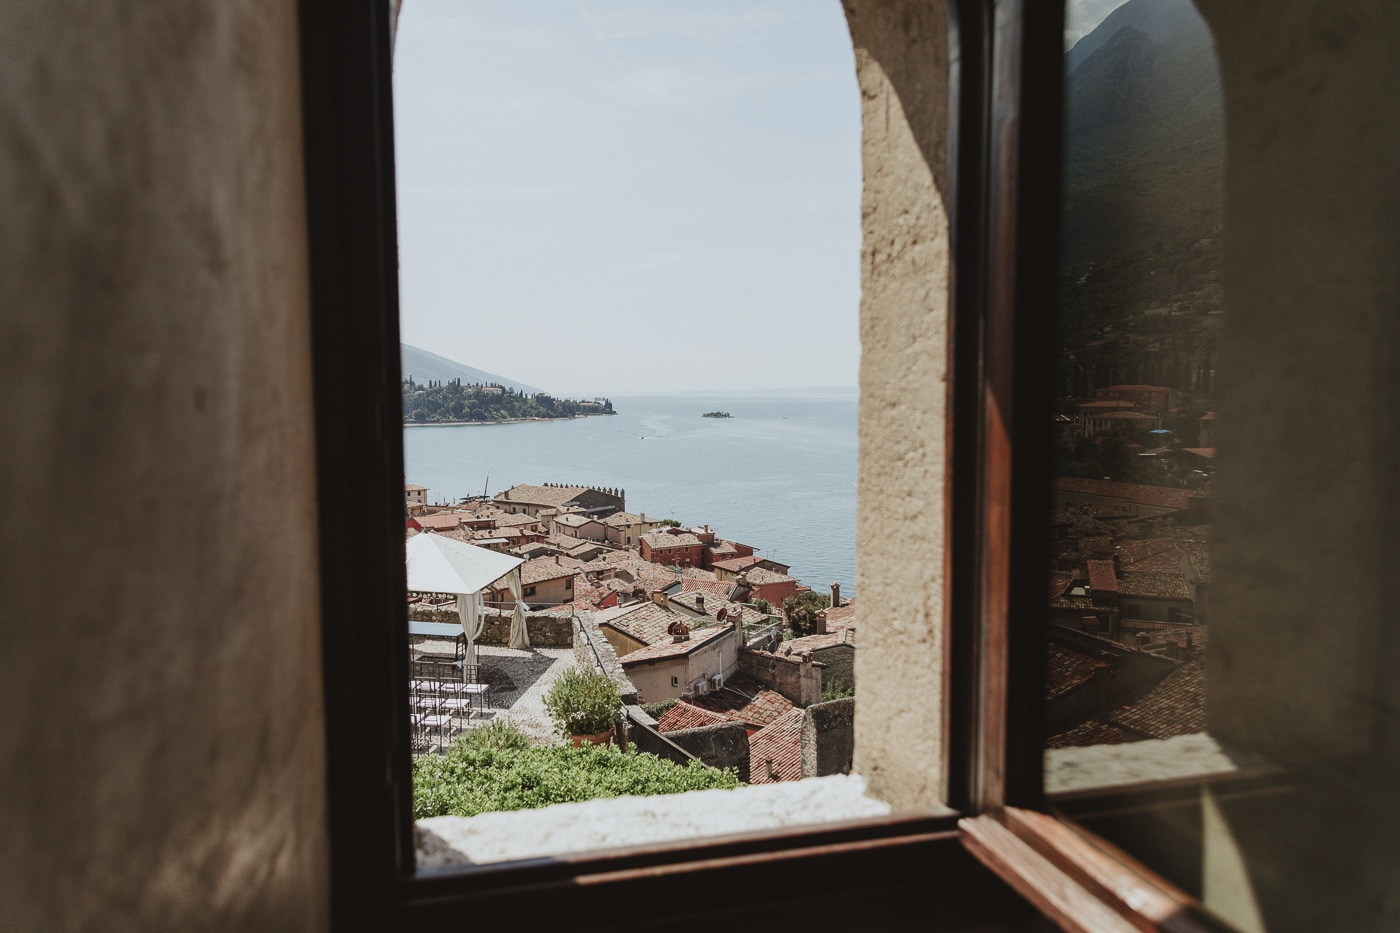 Looking out the window at lake garda in italy